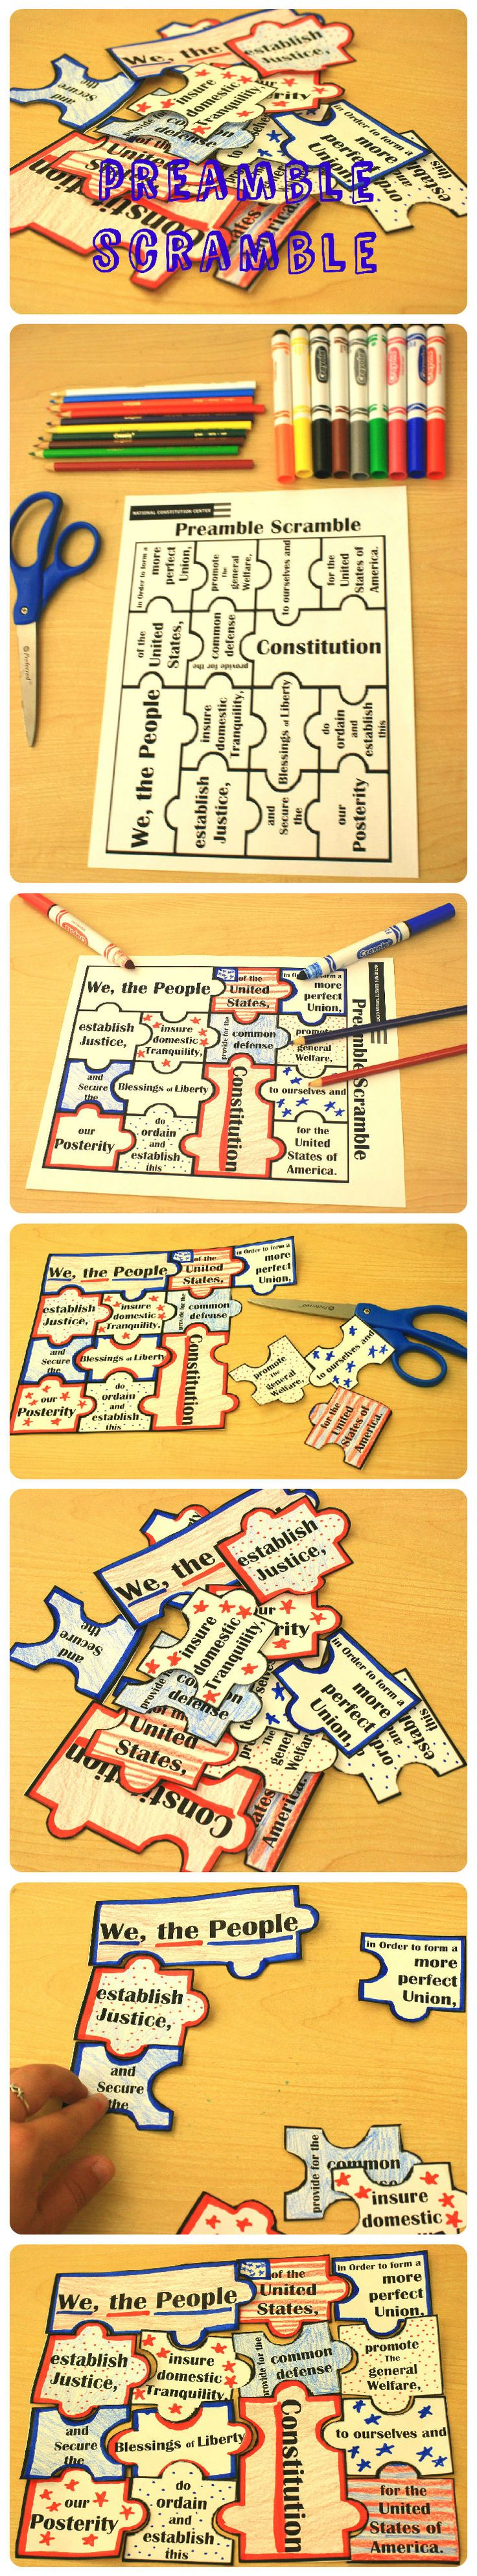 Have fun getting to know the phrases of the Preamble of the #Constitution while unscrambling your #DIY puzzle.